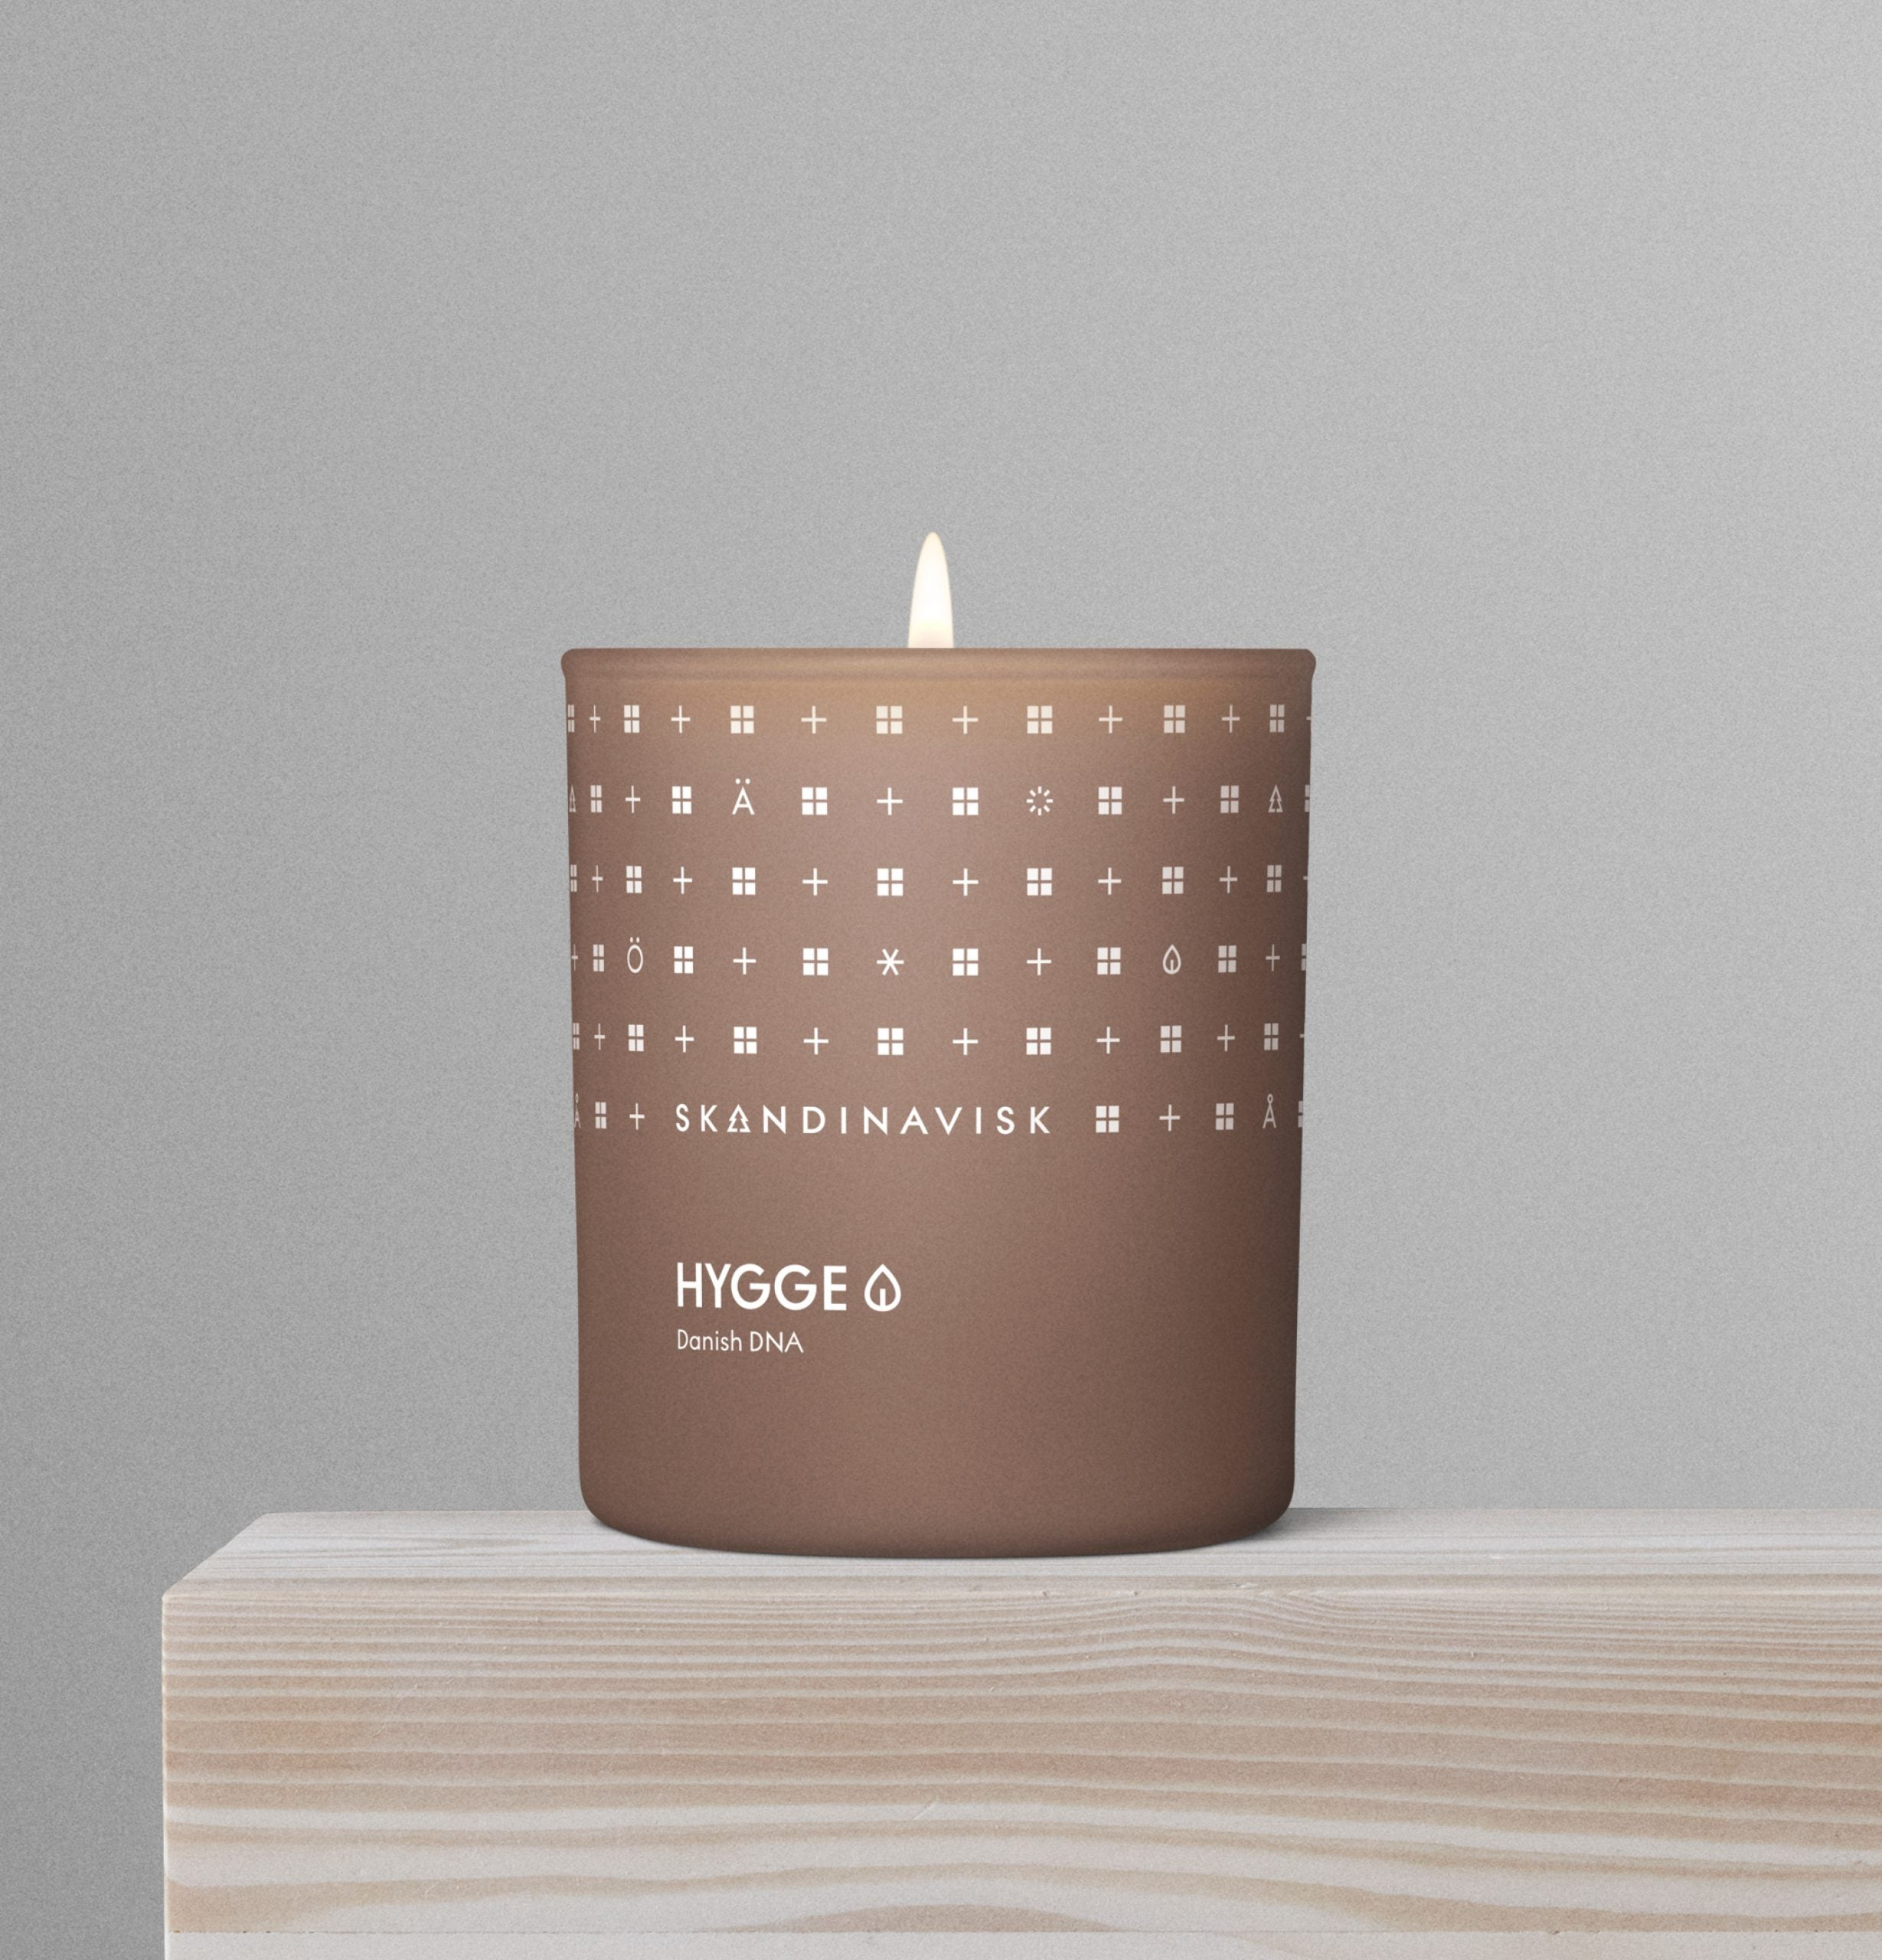 Hygge (Cosiness) Candle